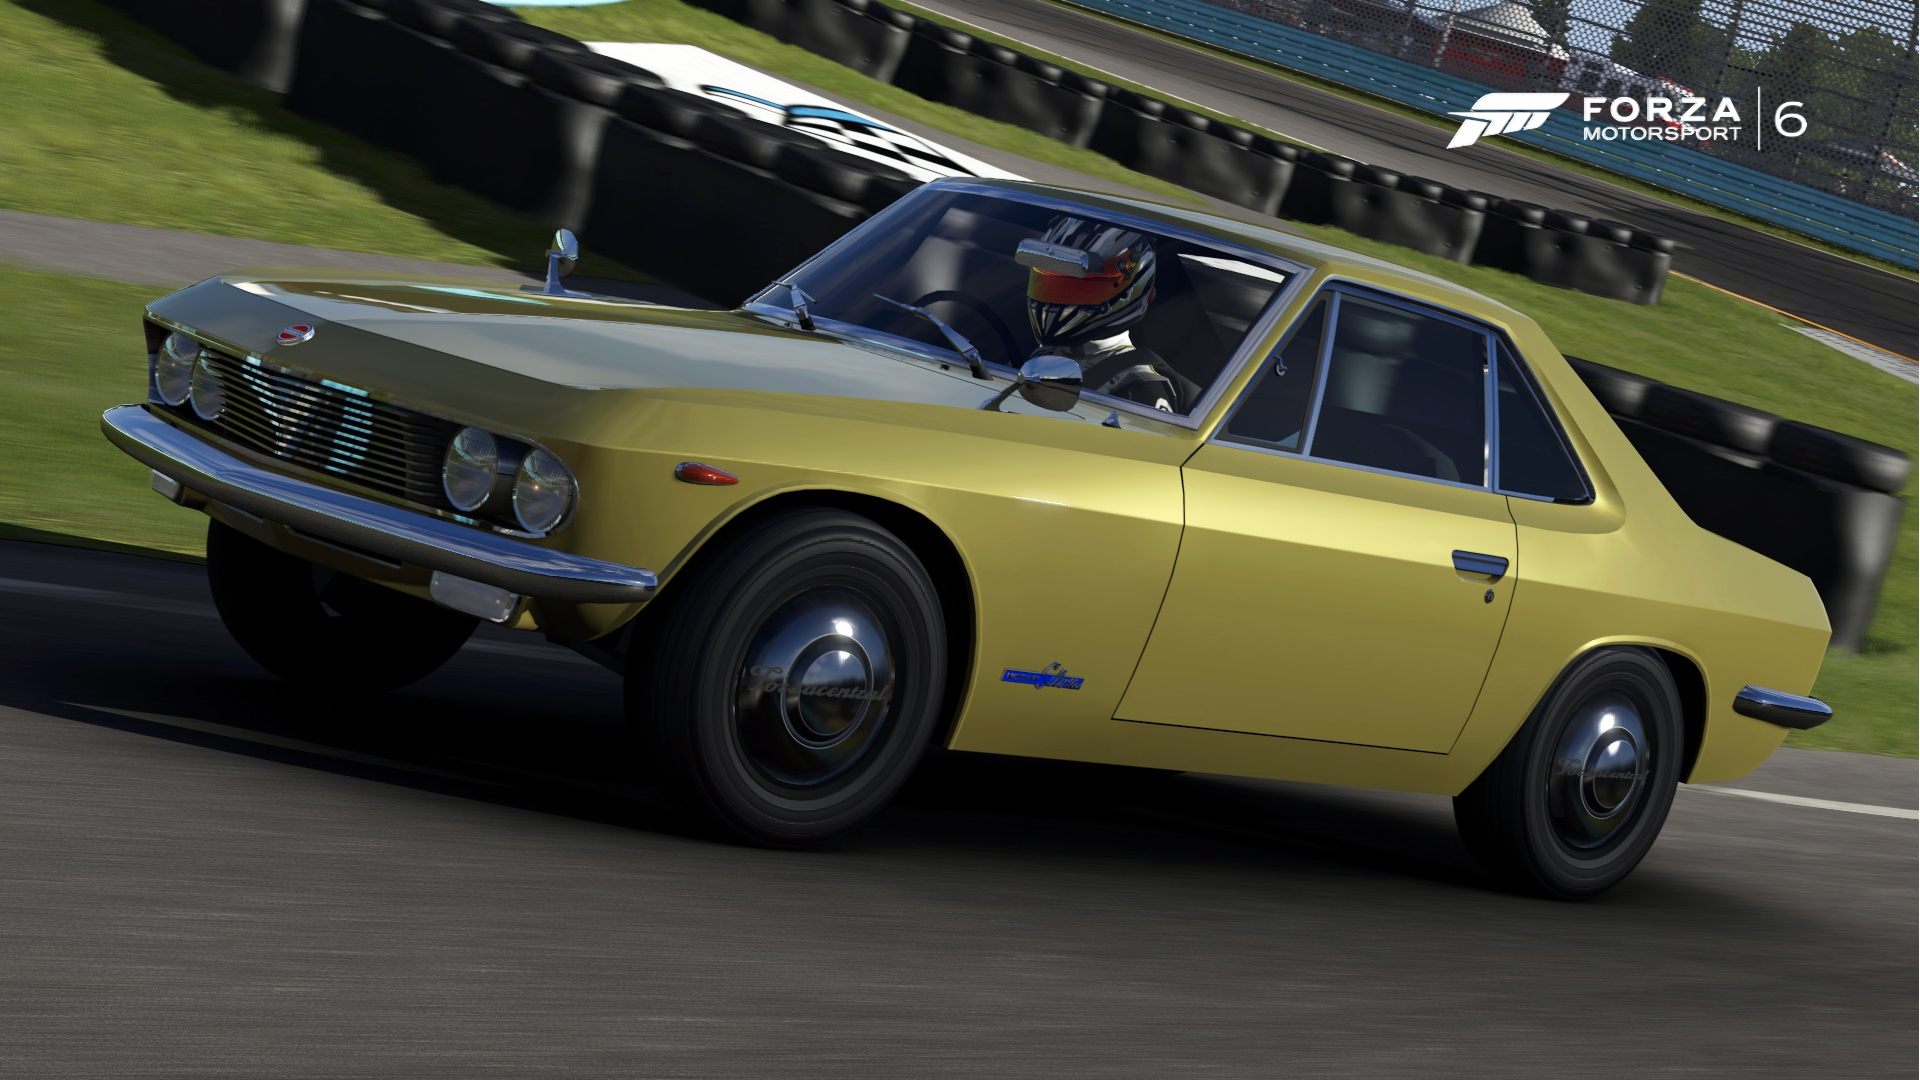 Nissan Silvia 1966 december free car? - Forza 6 Discussion - Forza